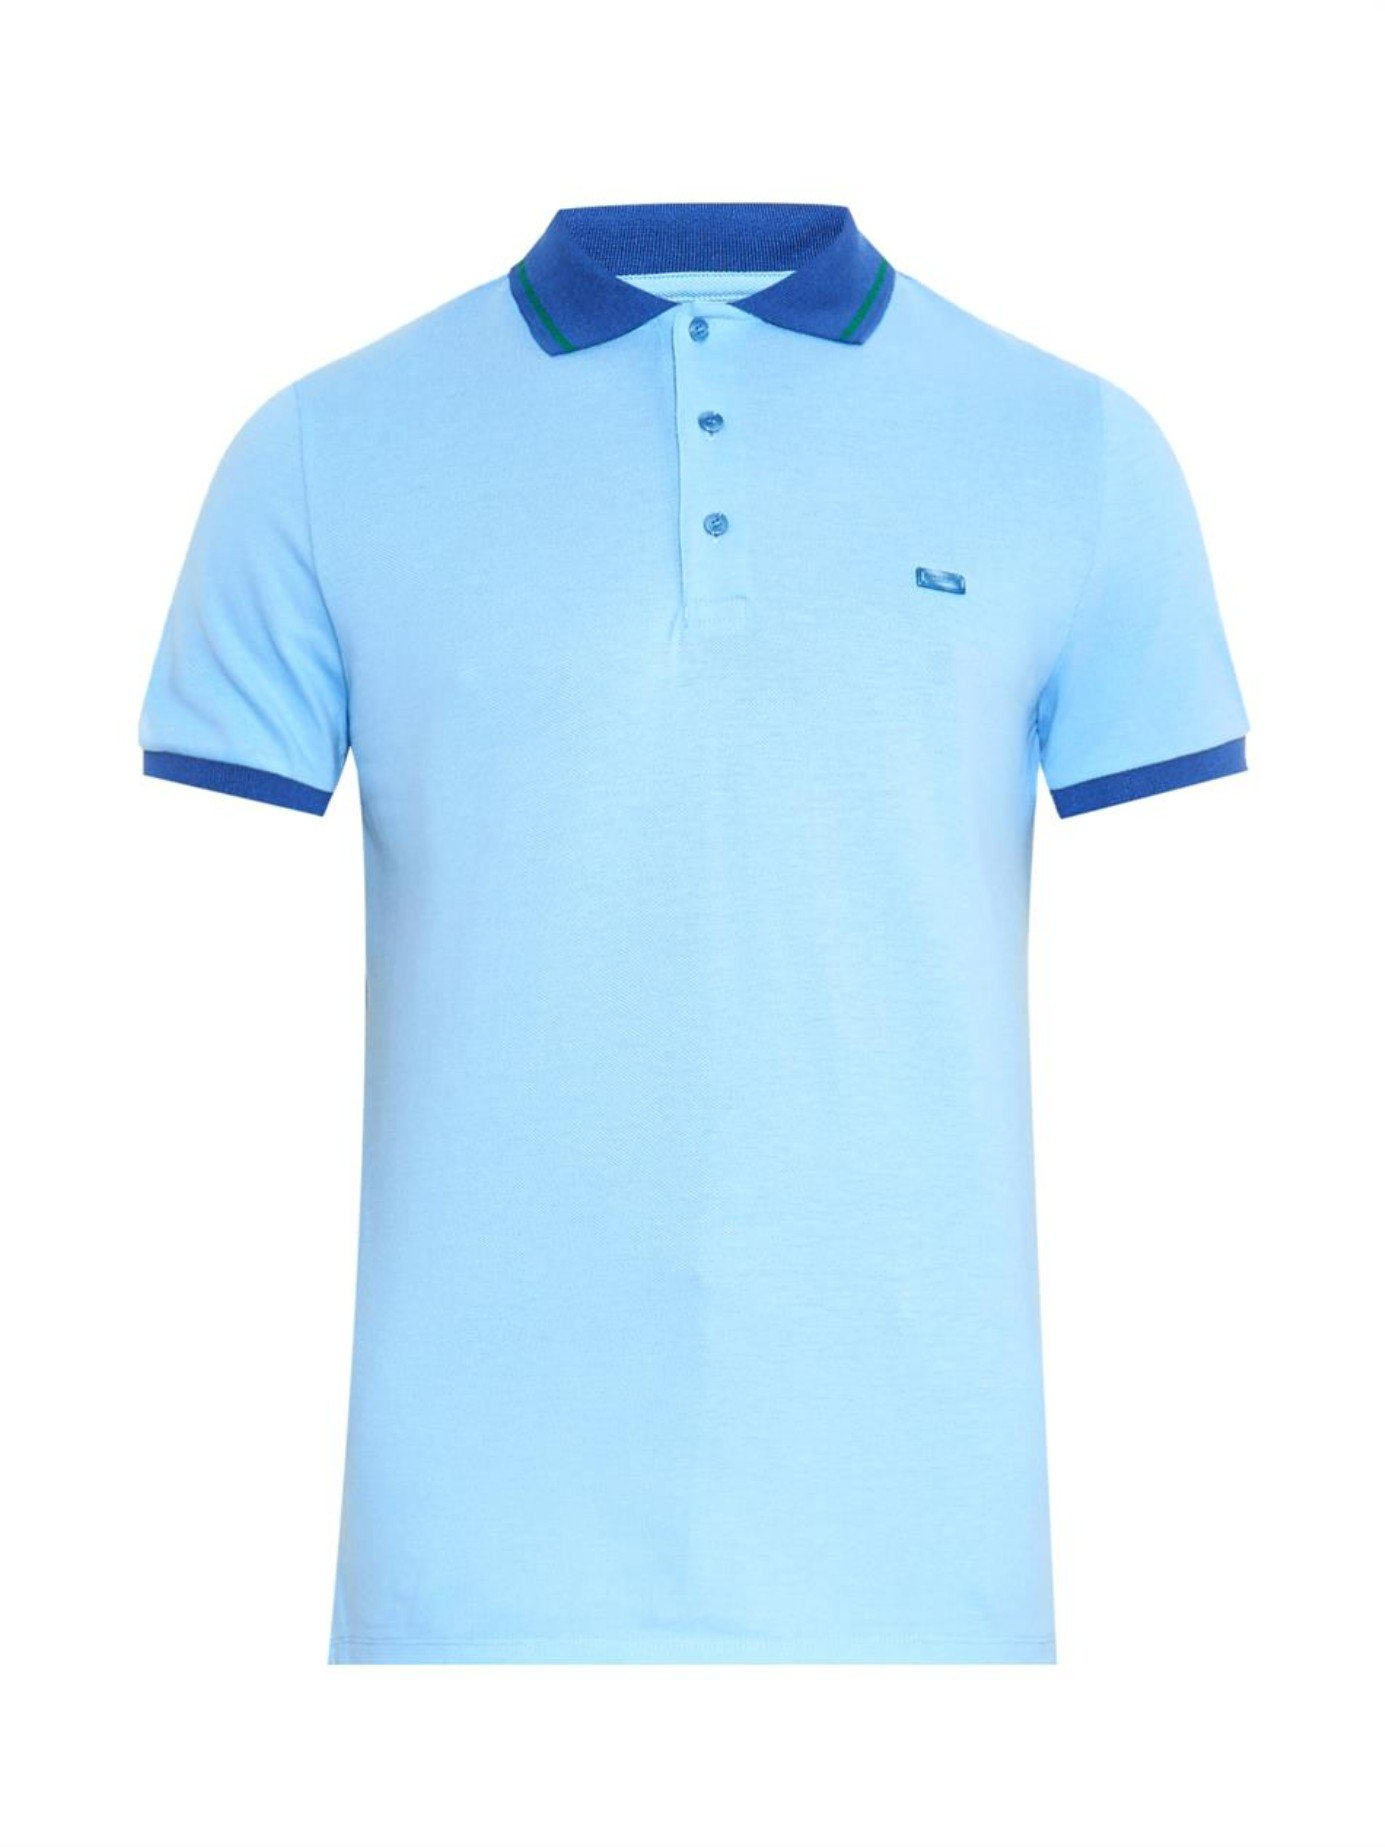 868ed3b53ced Burberry Atkins Cotton-Piqué Polo Shirt in Blue for Men - Lyst